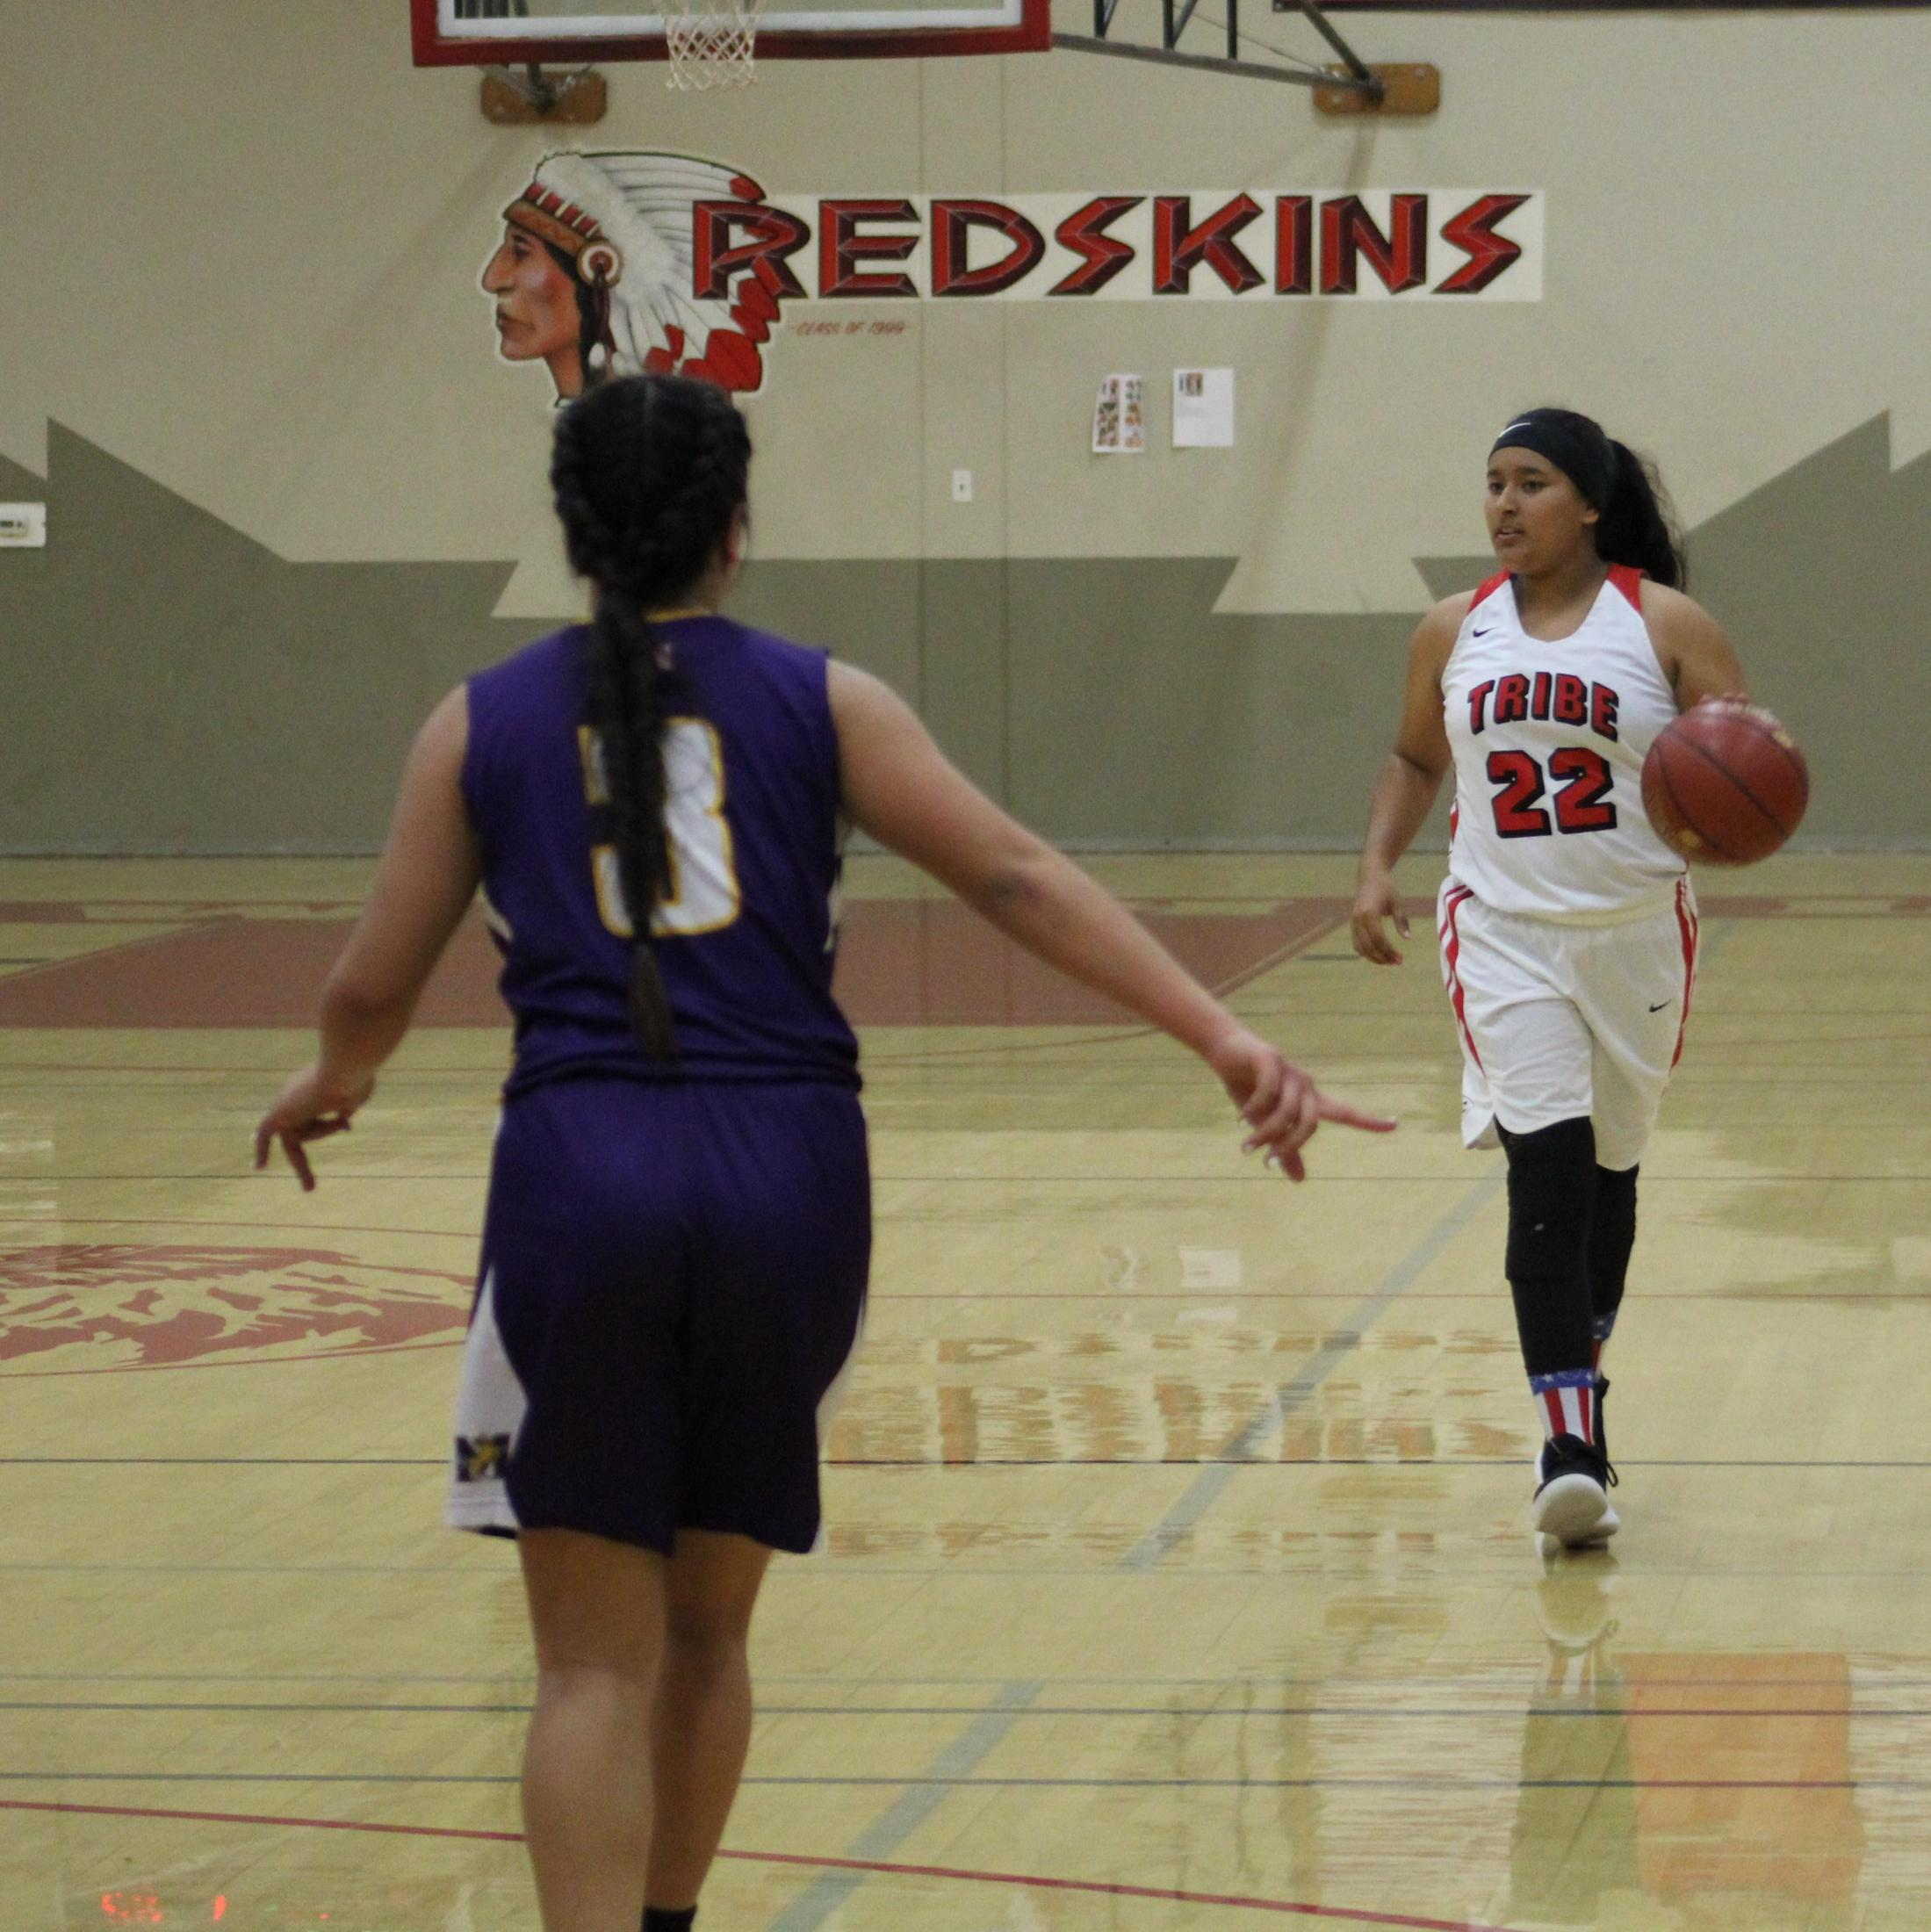 Paulina Granados dribbling the ball